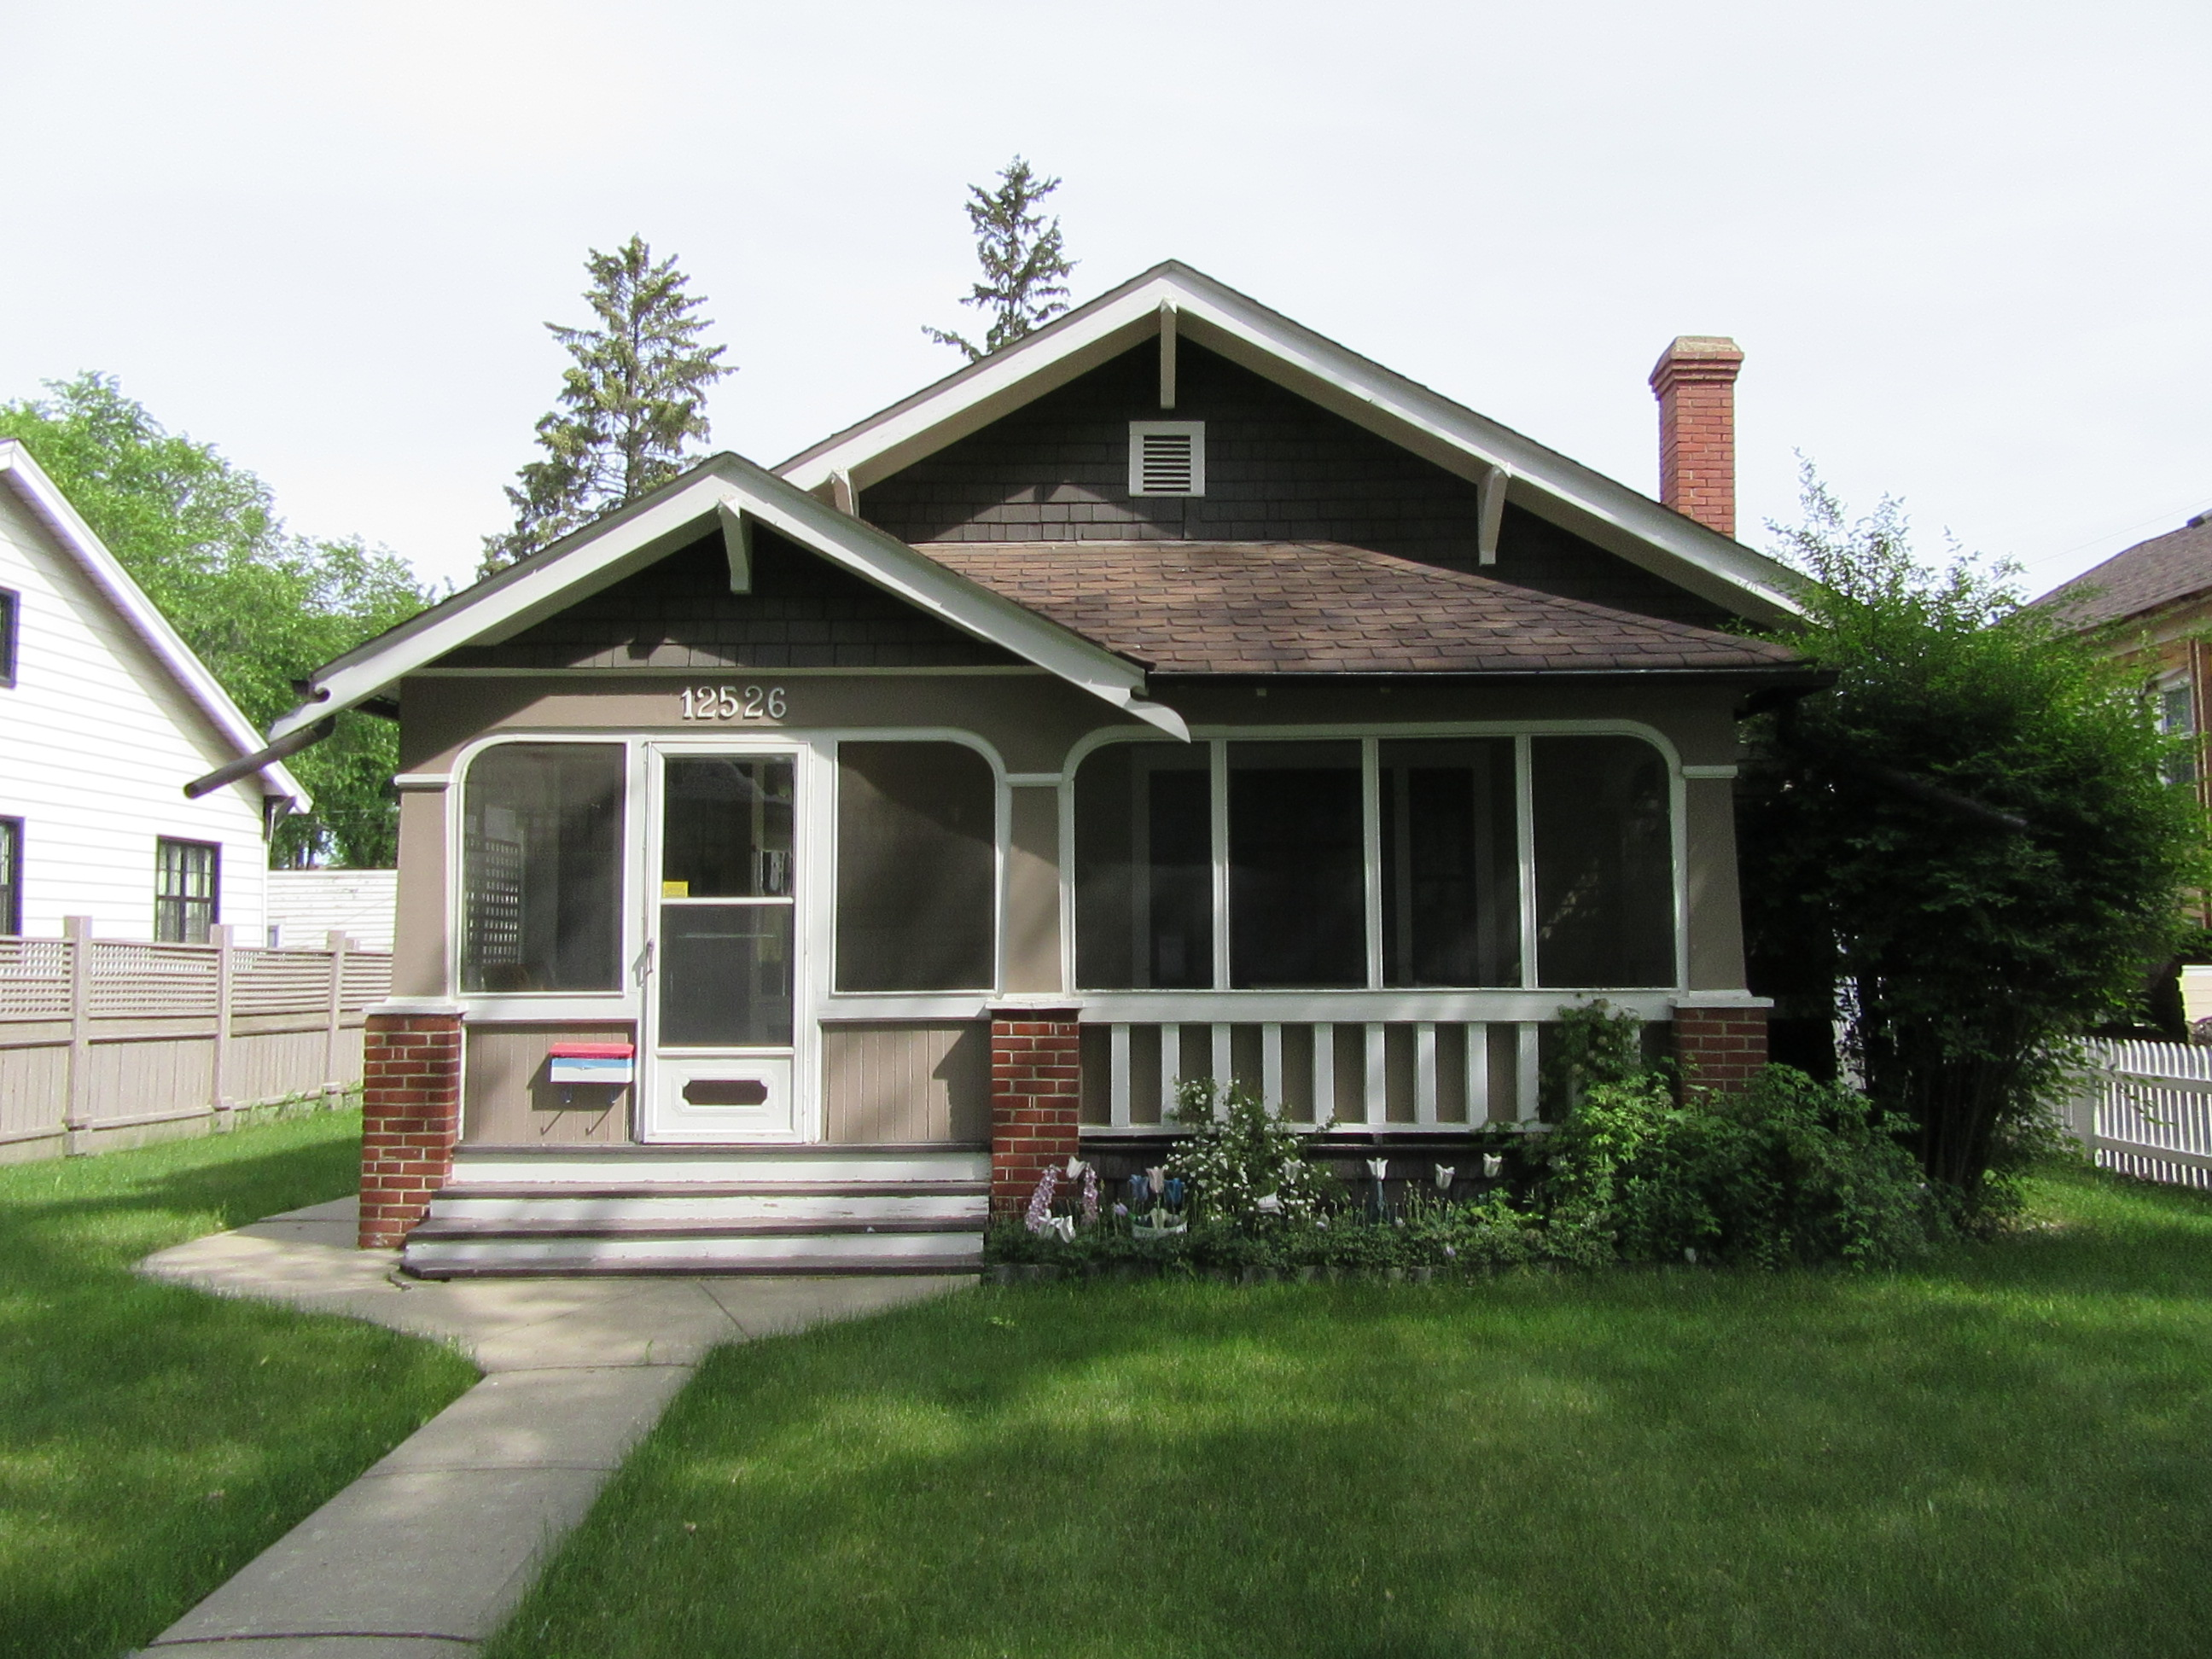 The house is located within the Westmount Architectural Heritage Area. Throughout history the neighbourhood of Westmount has retained a strong sense of architectural character, and is noted for its large collection of single detached homes, that were built between 1911 and 1925.